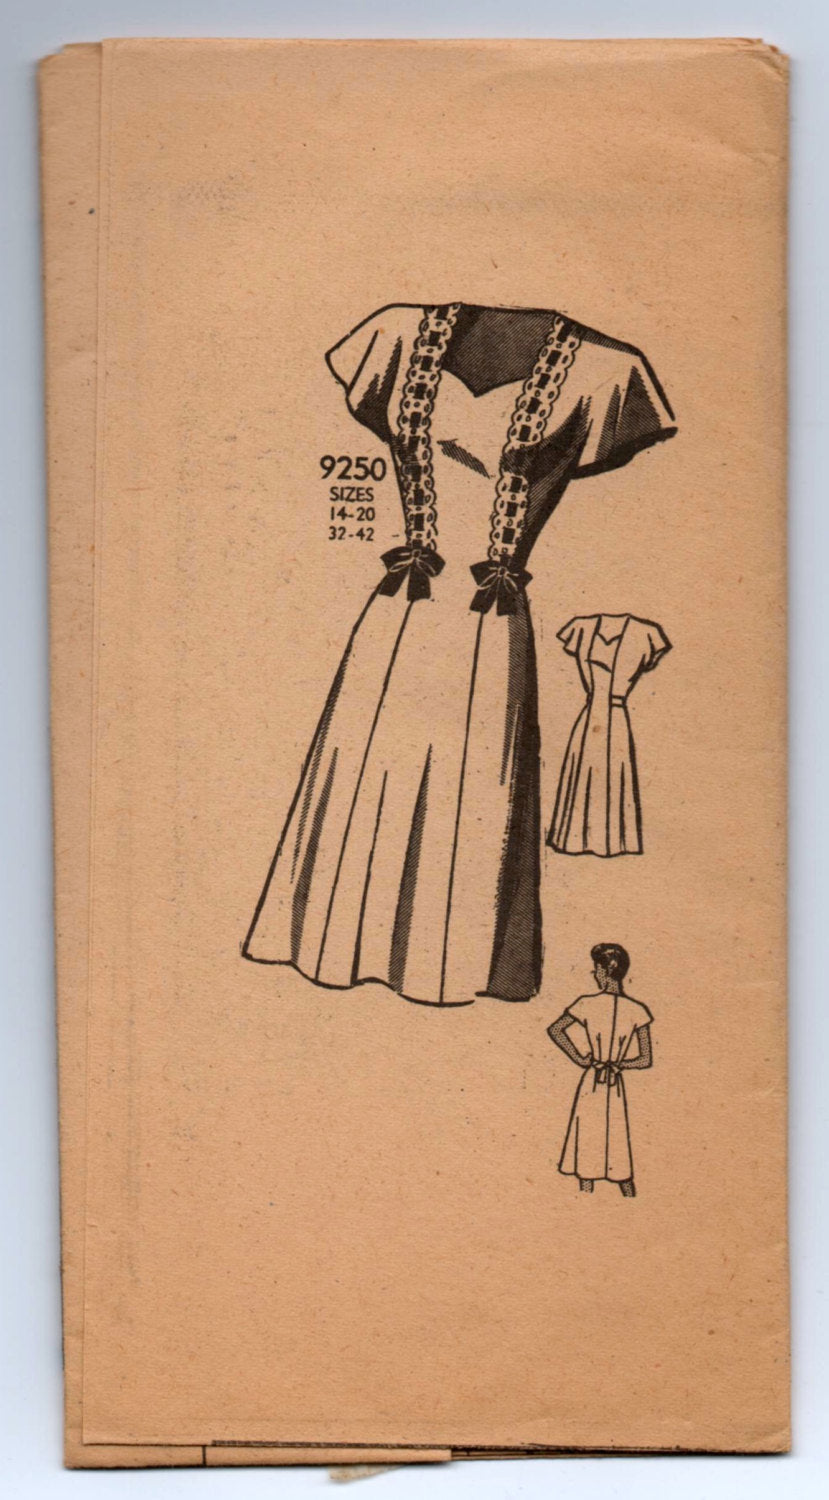 1940's Marian Martin One-Piece Dress with Cap Sleeves - Bust 38